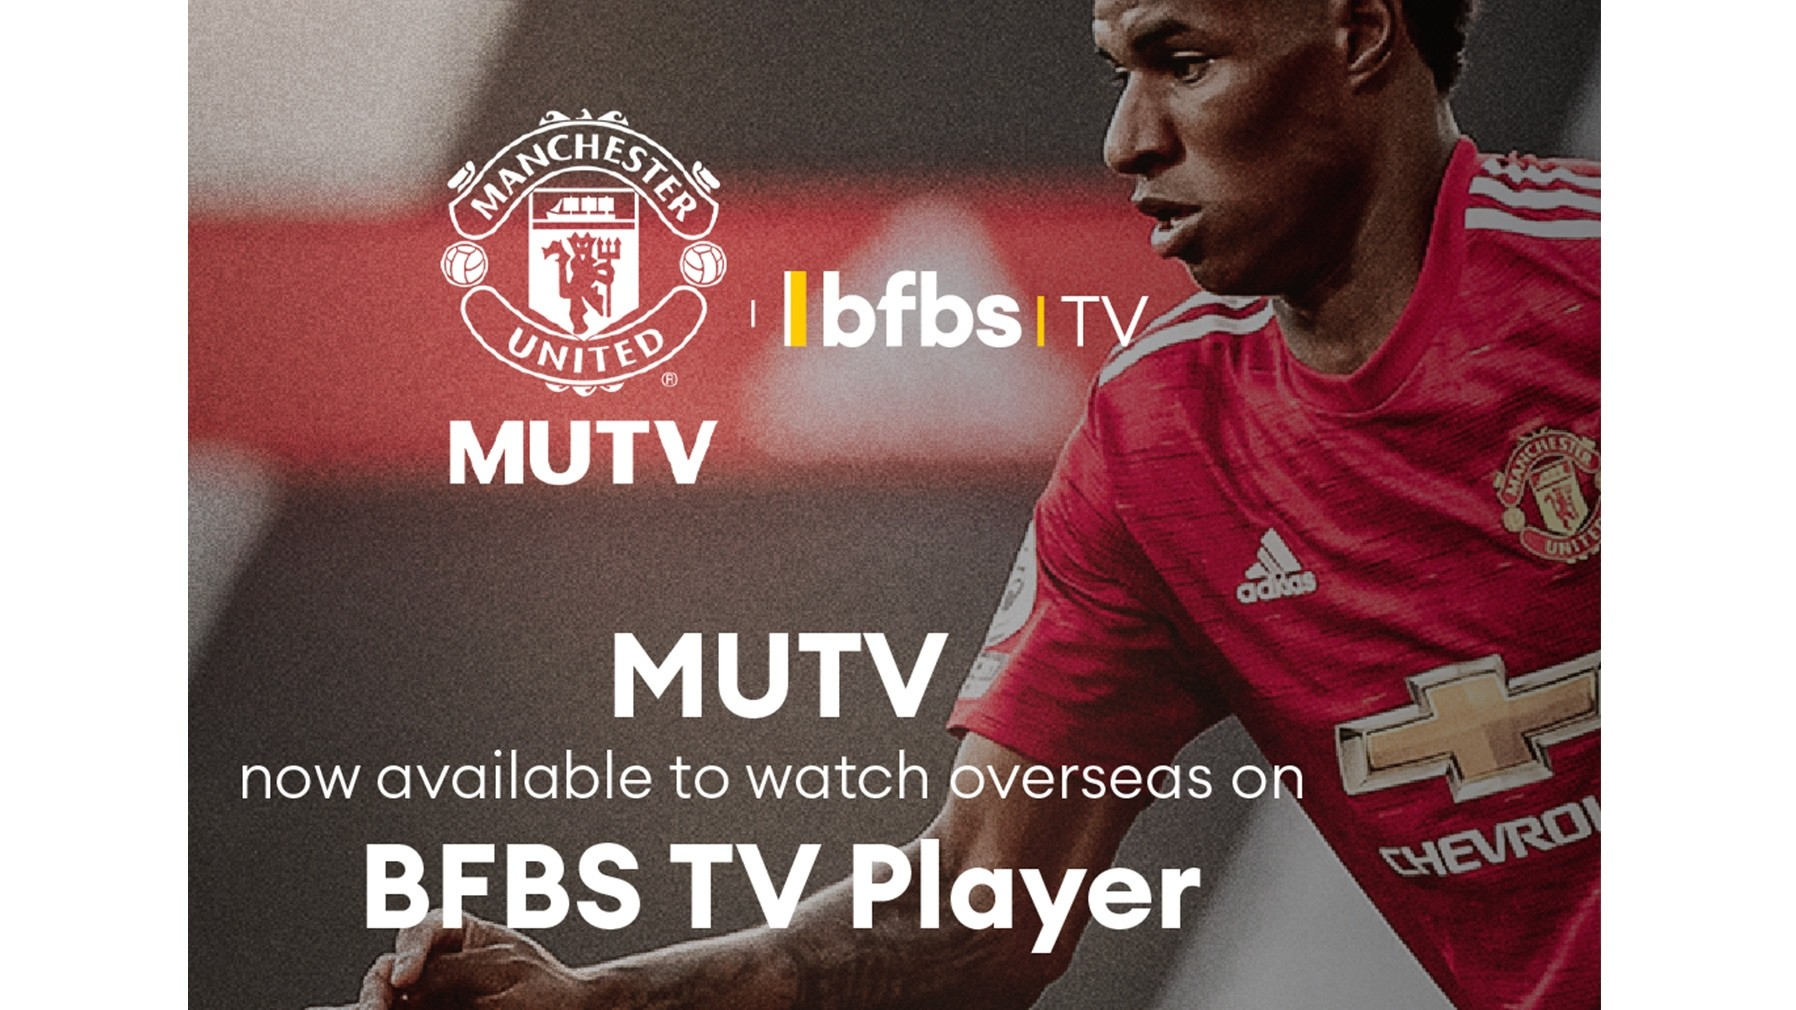 Free access to MUTV for UK Armed Forces